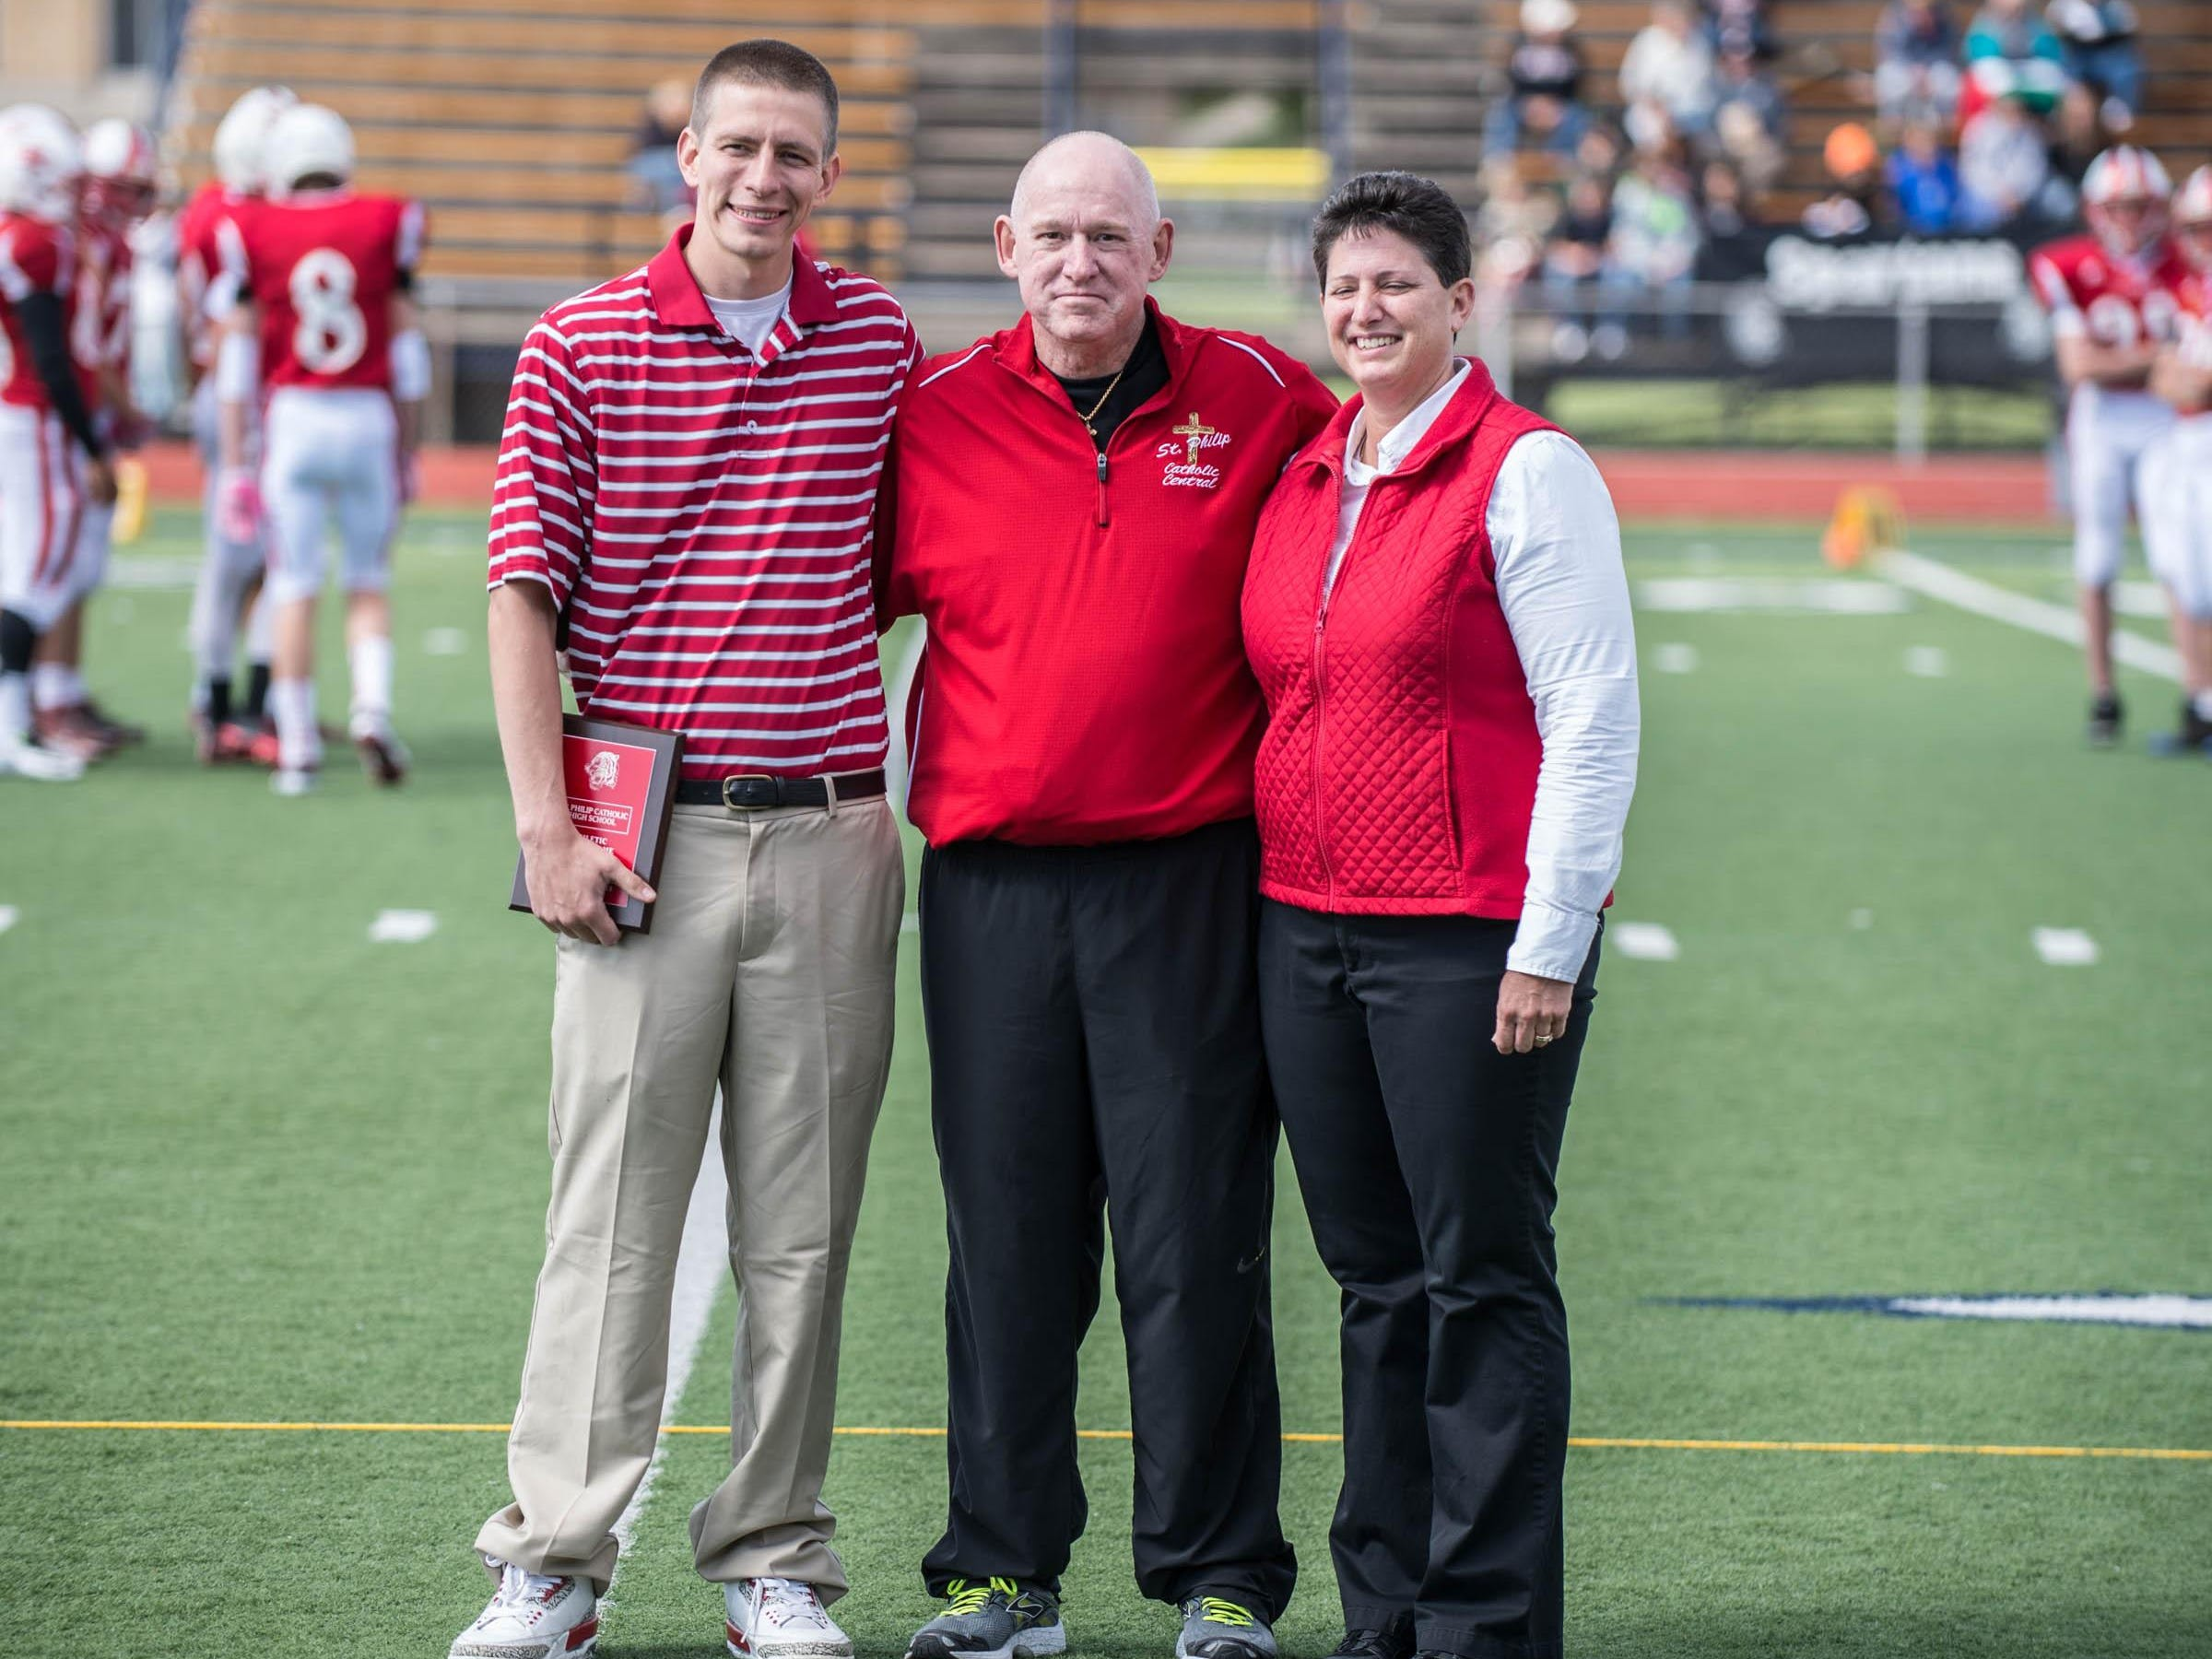 Mike Leifeld (left) and Ted Fitzgerald are joined by Athletic Director/Principal Vicky Groat after each were inducted into St. Philip's Athletic Hall of Fame during Saturday's Homecoming game.